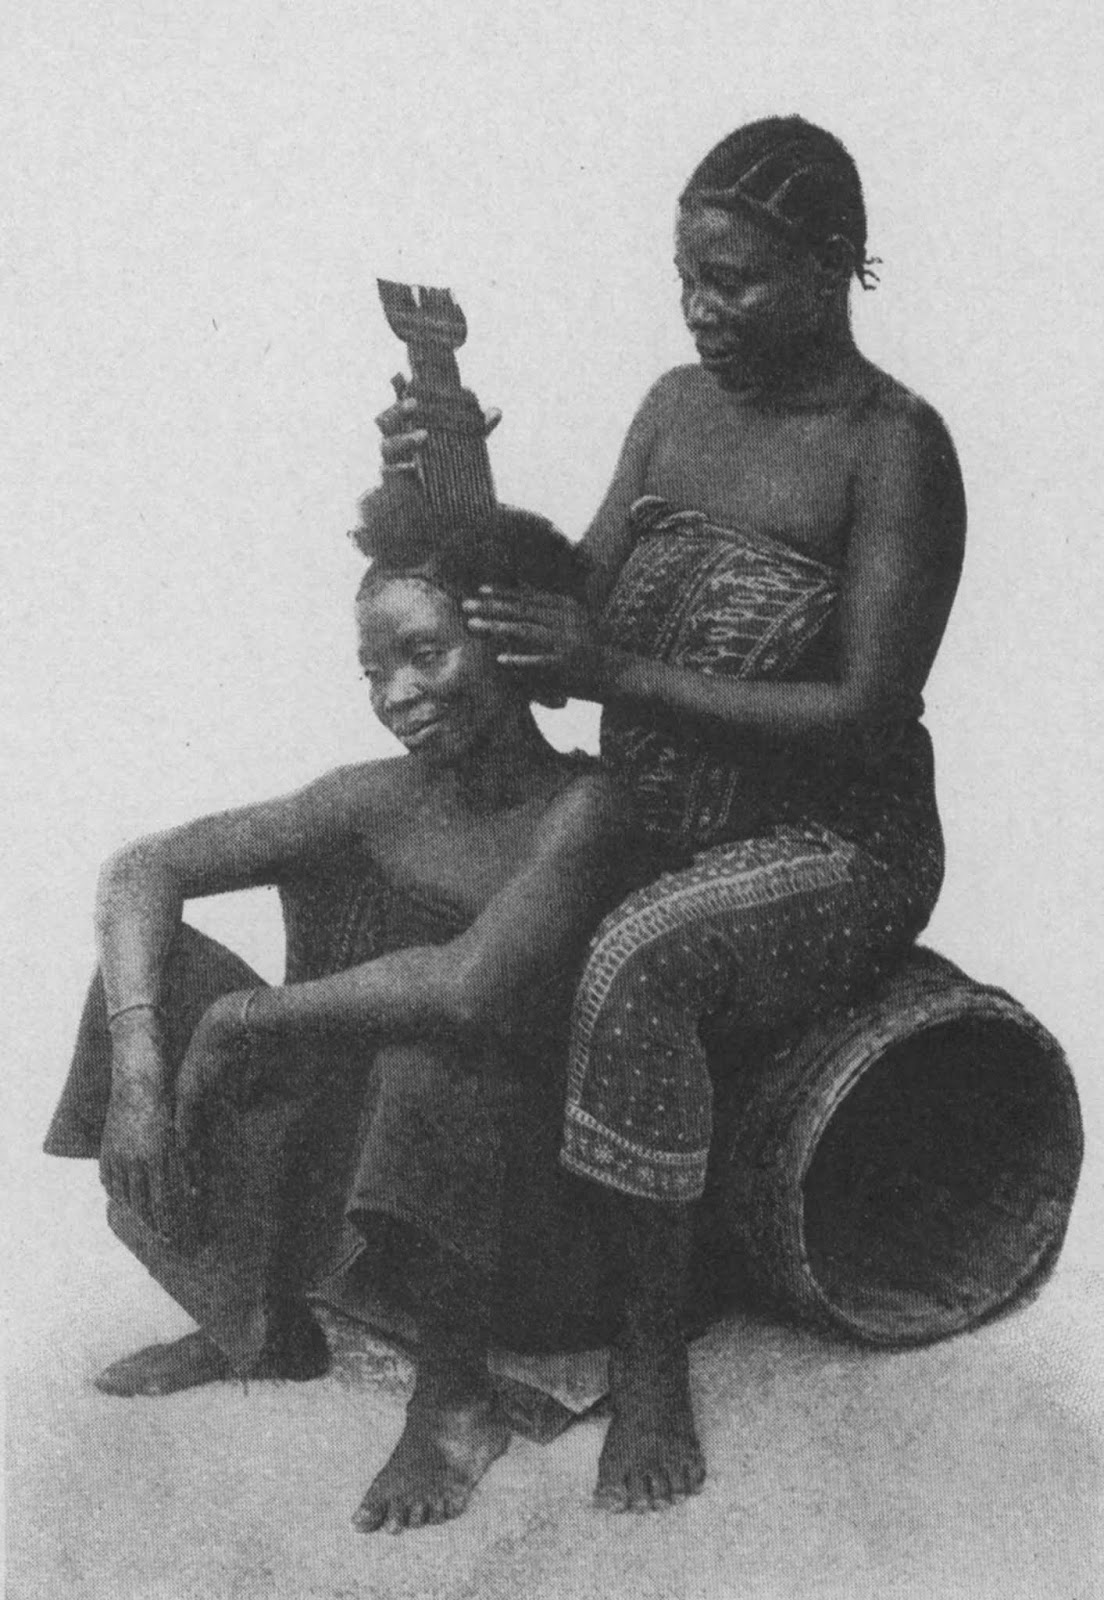 Natives dressing hair. Zanzibar, British East Africa (Tanzania), probably 1890s.